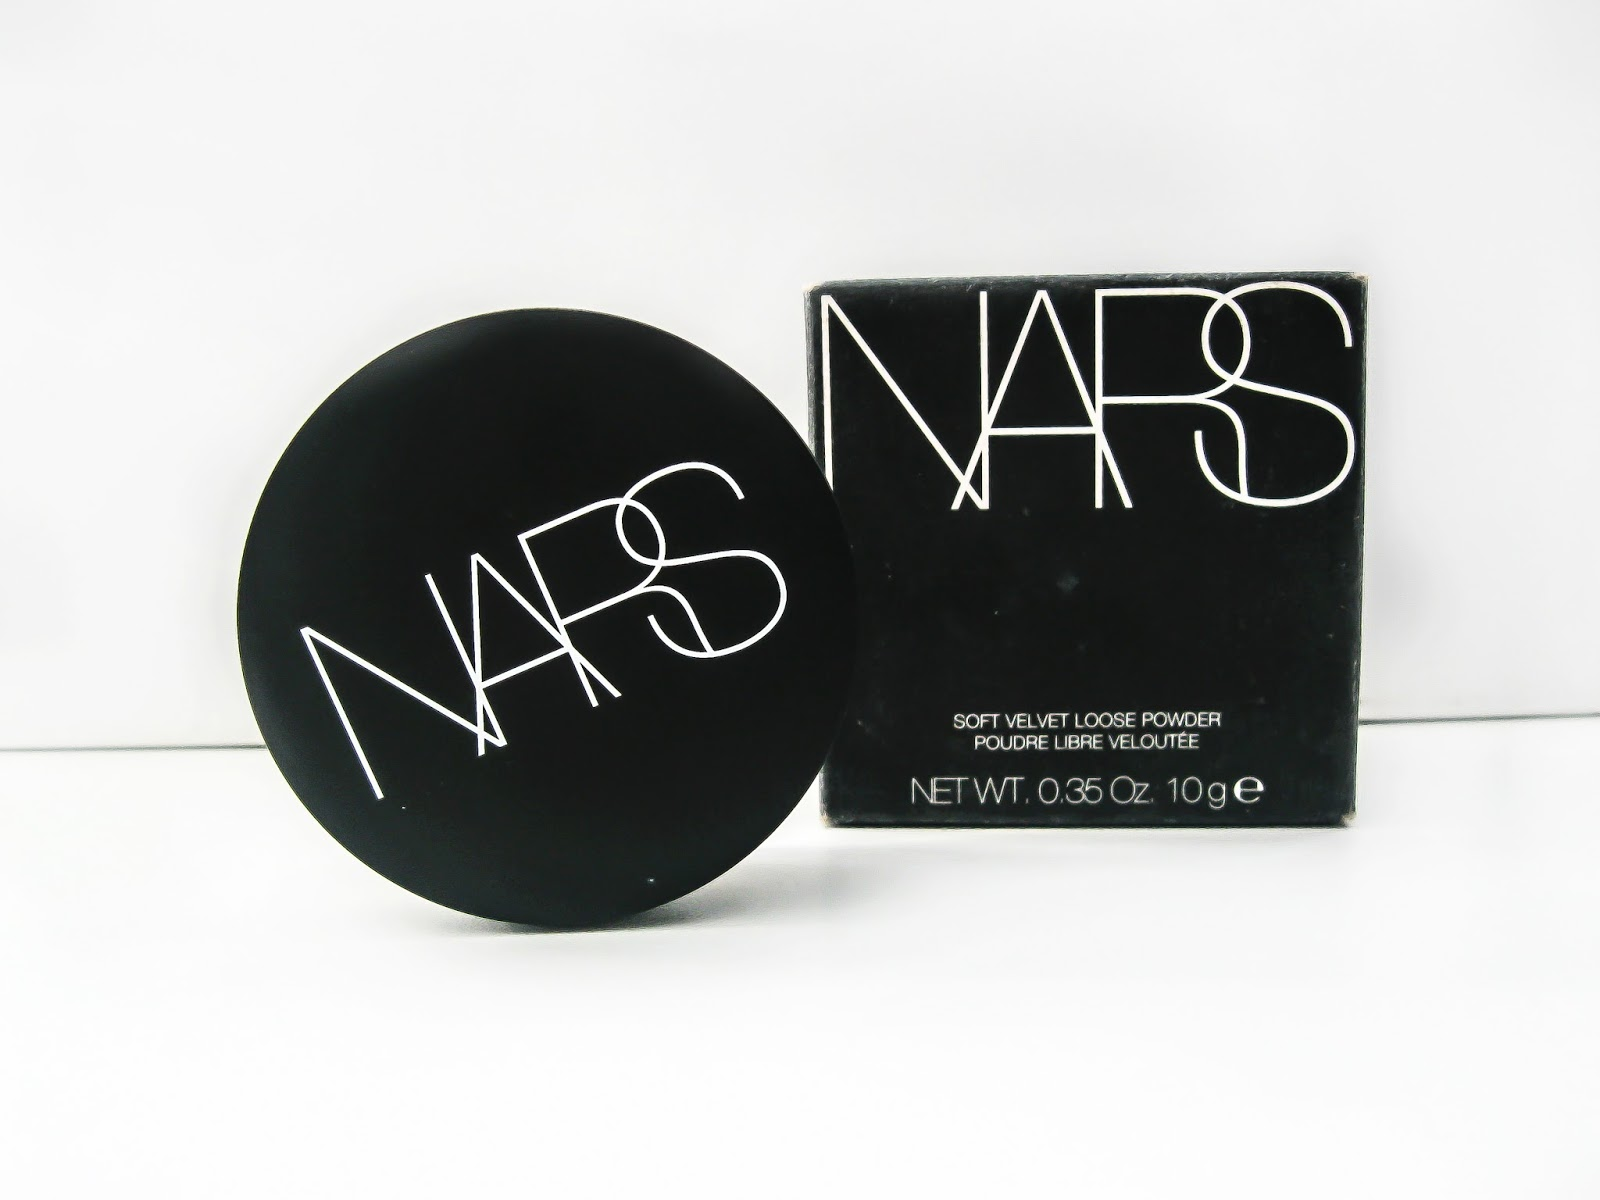 Nars Soft Velvet Loose Powder Review